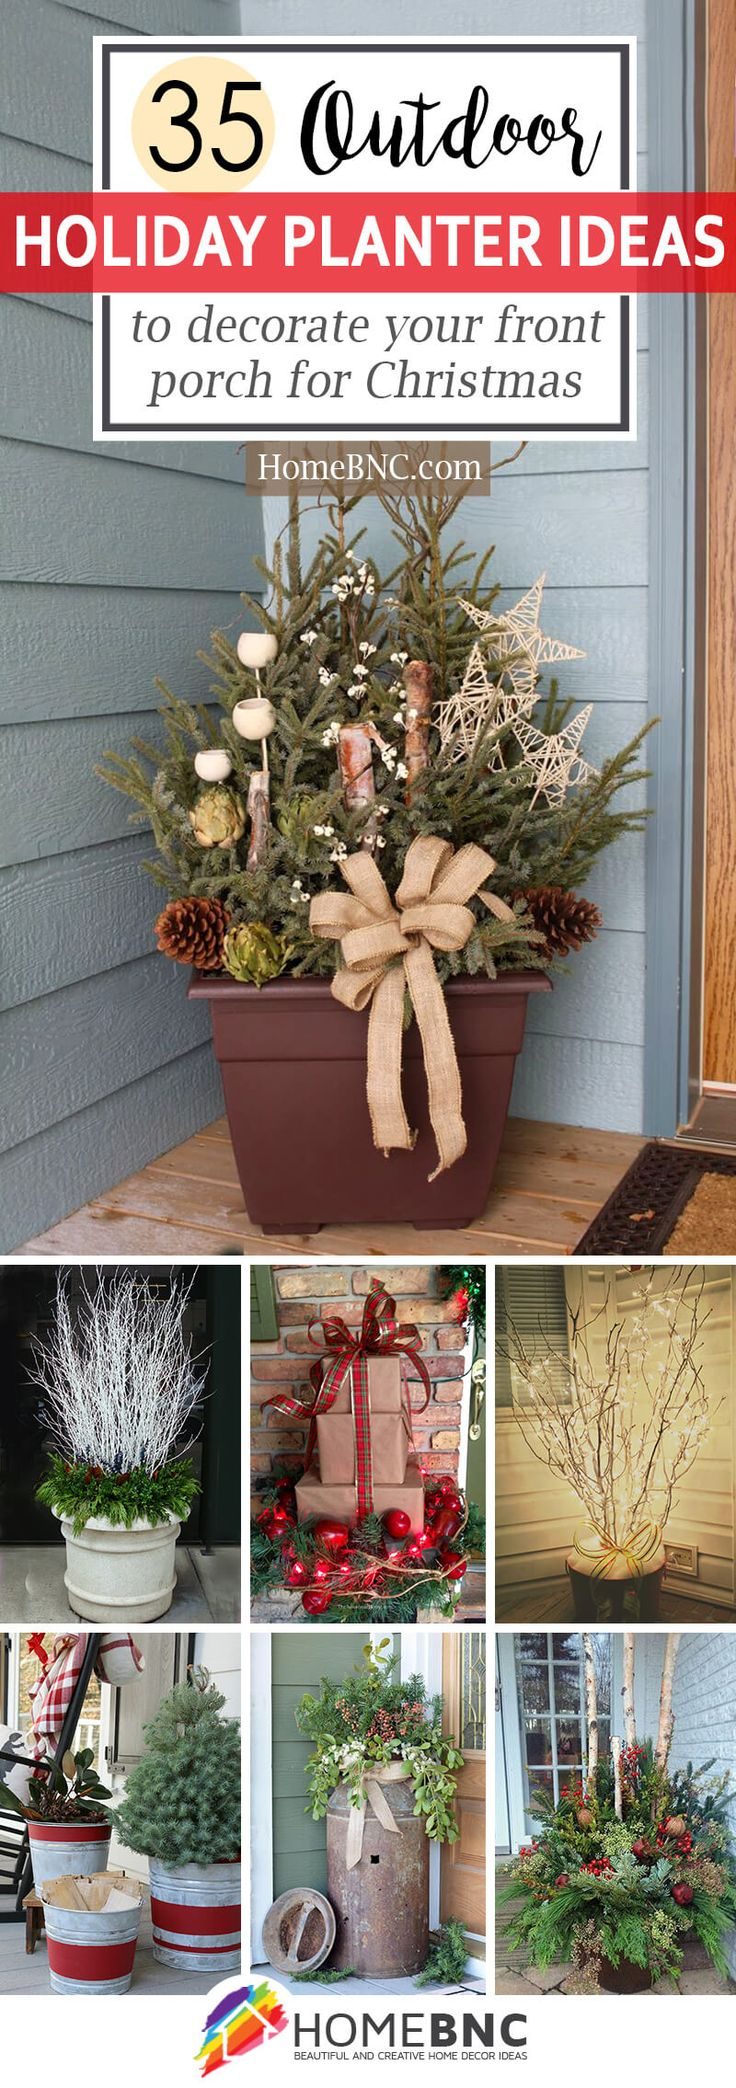 Best 25+ Outdoor Christmas Planters Ideas On Pinterest. Patio Bench Swing Cushions. Small Backyard Landscaping Ideas With Above Ground Pool. Patio Furniture You Can Leave Out In The Winter. Wrought Iron Peacock Patio Furniture. Patio Furniture That Can Stay Out All Year. Patio Furniture Cover At Lowes. Outdoor Wicker Furniture Replacement Cushions. Kettler Patio Furniture Reviews